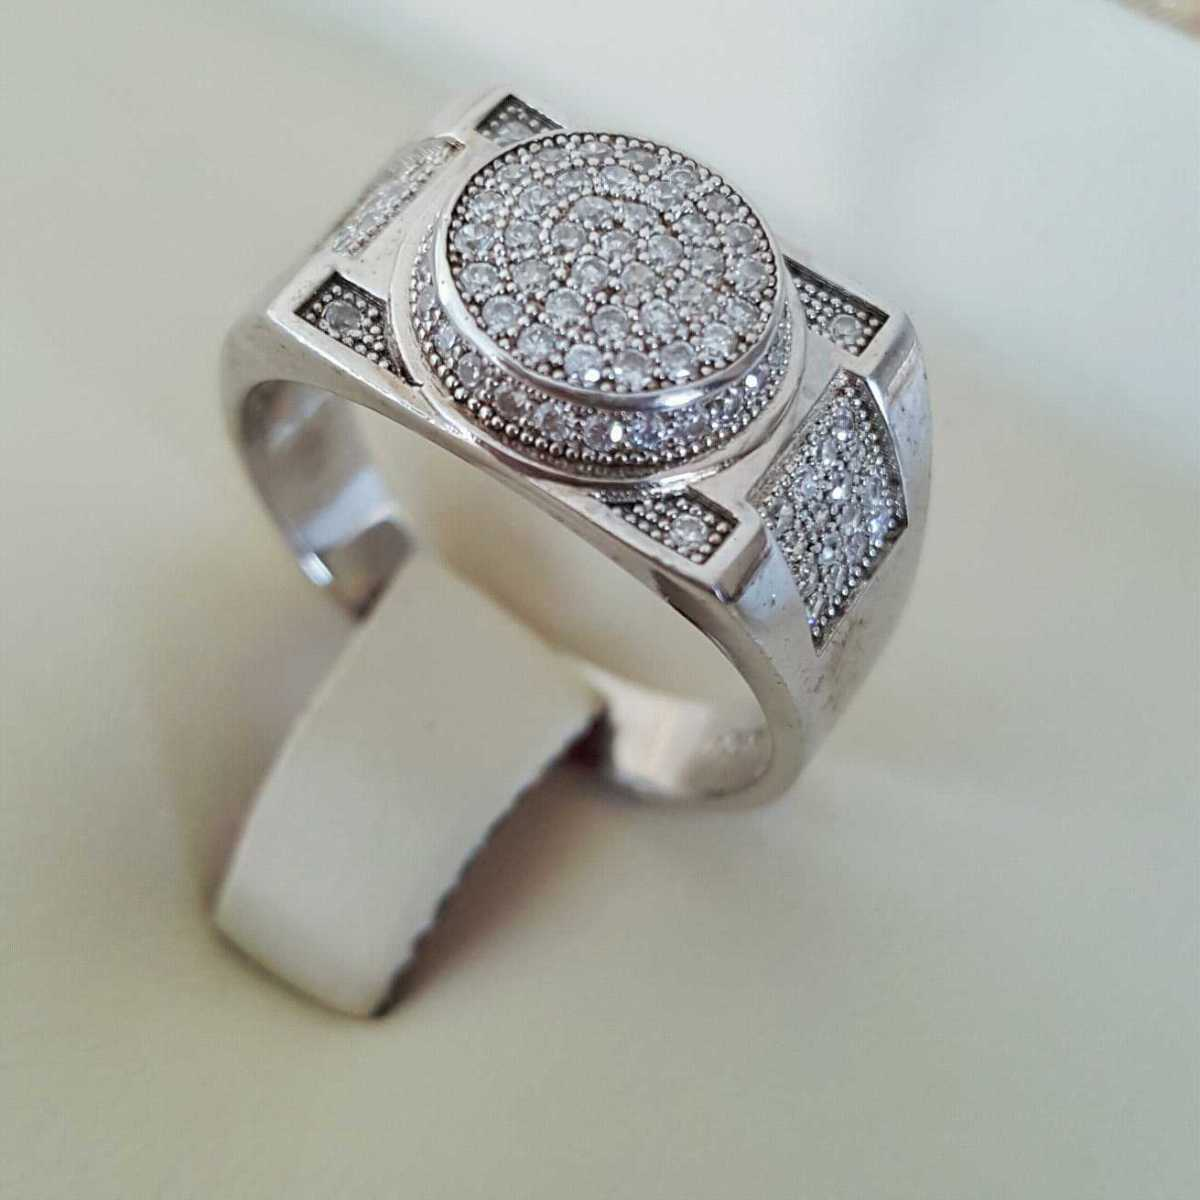 Pure Silver 925 Men Rings Italian Rings Imported From Dubai 11 natural gemstones pakistan + 925 silver jewelry online